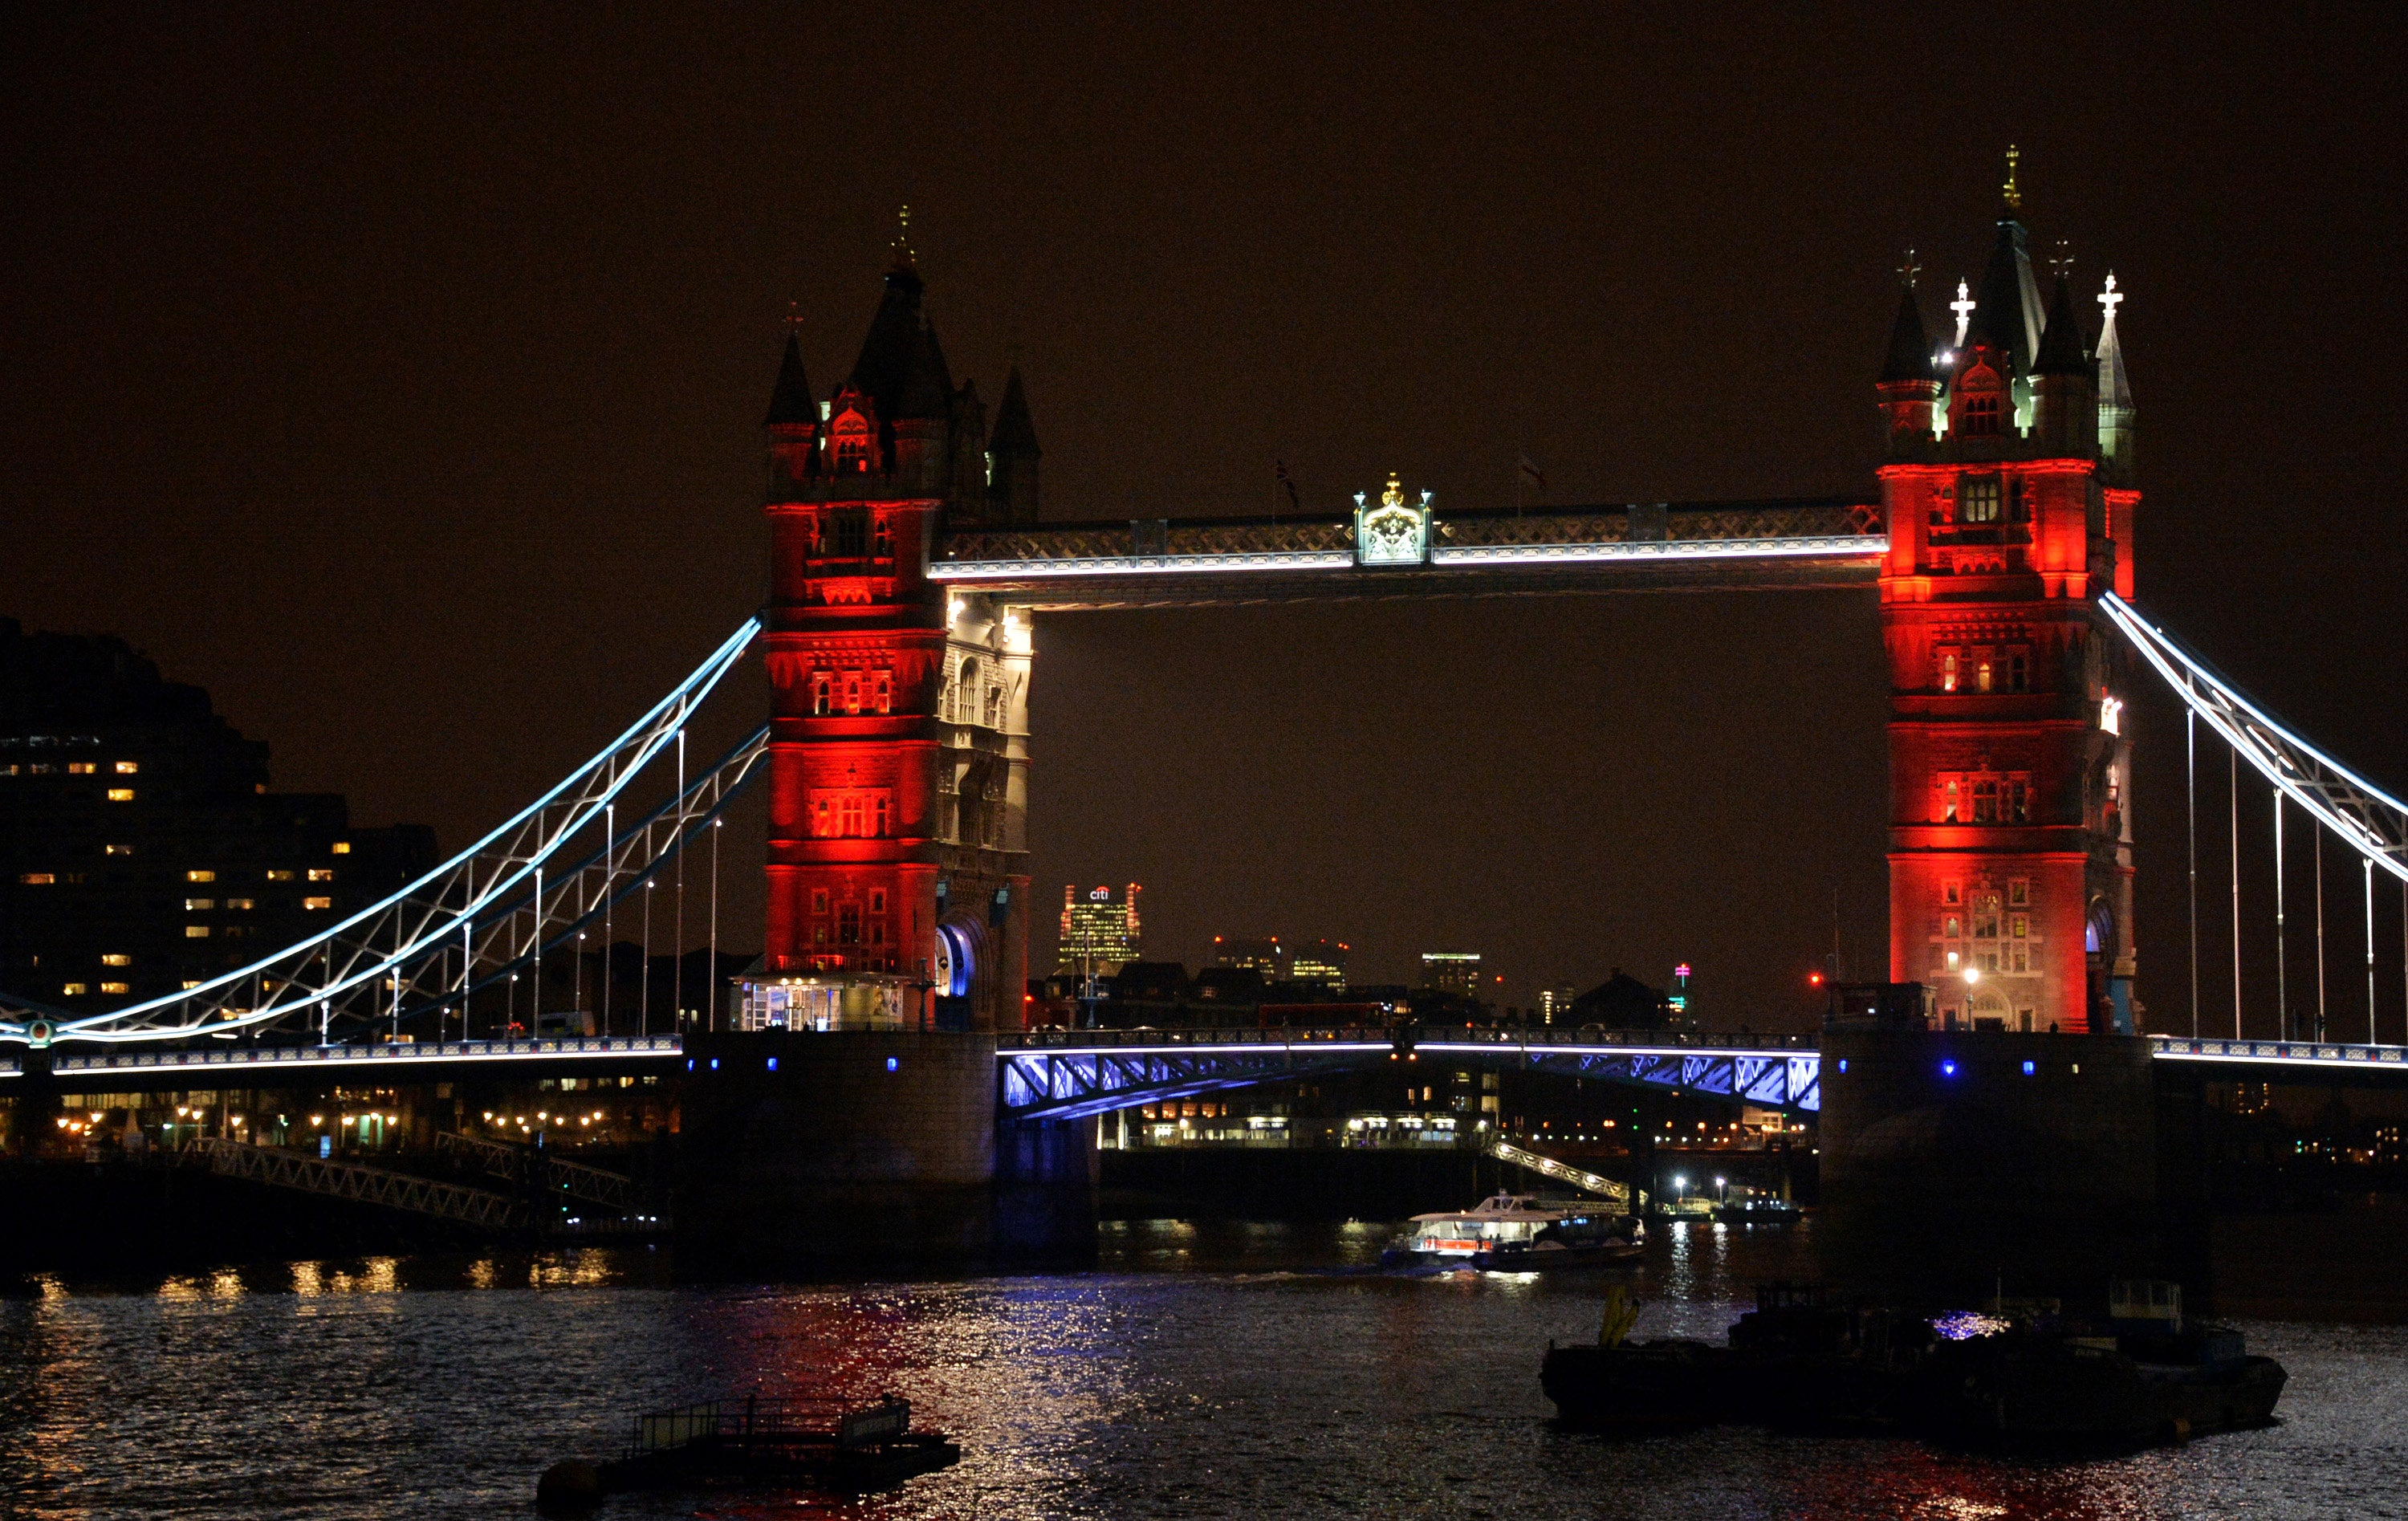 LONDON, ENGLAND - MARCH 23: London Bridge, one of many London landmarks which have been lit up in support of Belgium following the terrorist attacks in Brussels yesterday, on March 23, 2016 in London, England. Belgium is observing three days of national mourning after 34 people were killed in a twin suicide blast at Zaventem Airport and a further bomb attack at Maelbeek Metro Station. Two brothers are thought to have carried out the airport attack and an international manhunt is underway for a third suspect. The attacks come just days after a key suspect in the Paris attacks, Salah Abdeslam, was captured in Brussels. (Photo by Anthony Harvey/Getty Images)